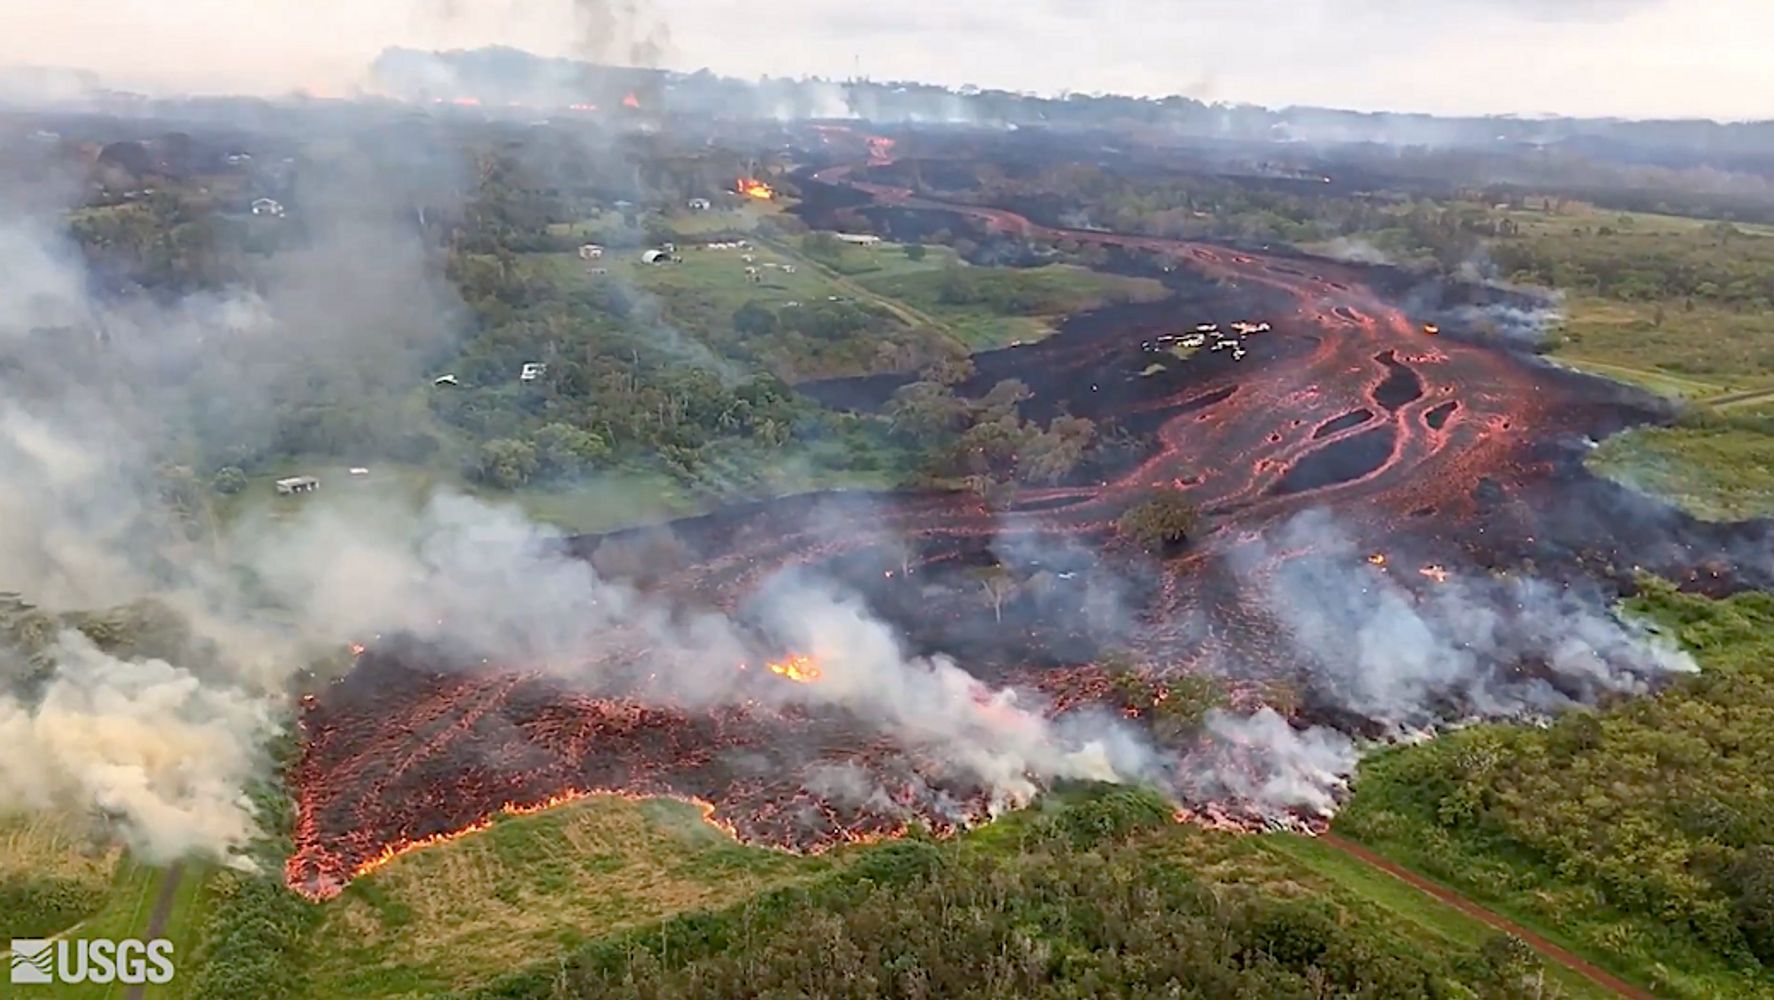 Hawaii S Eruptions Intensify As Fissures Merge To Form